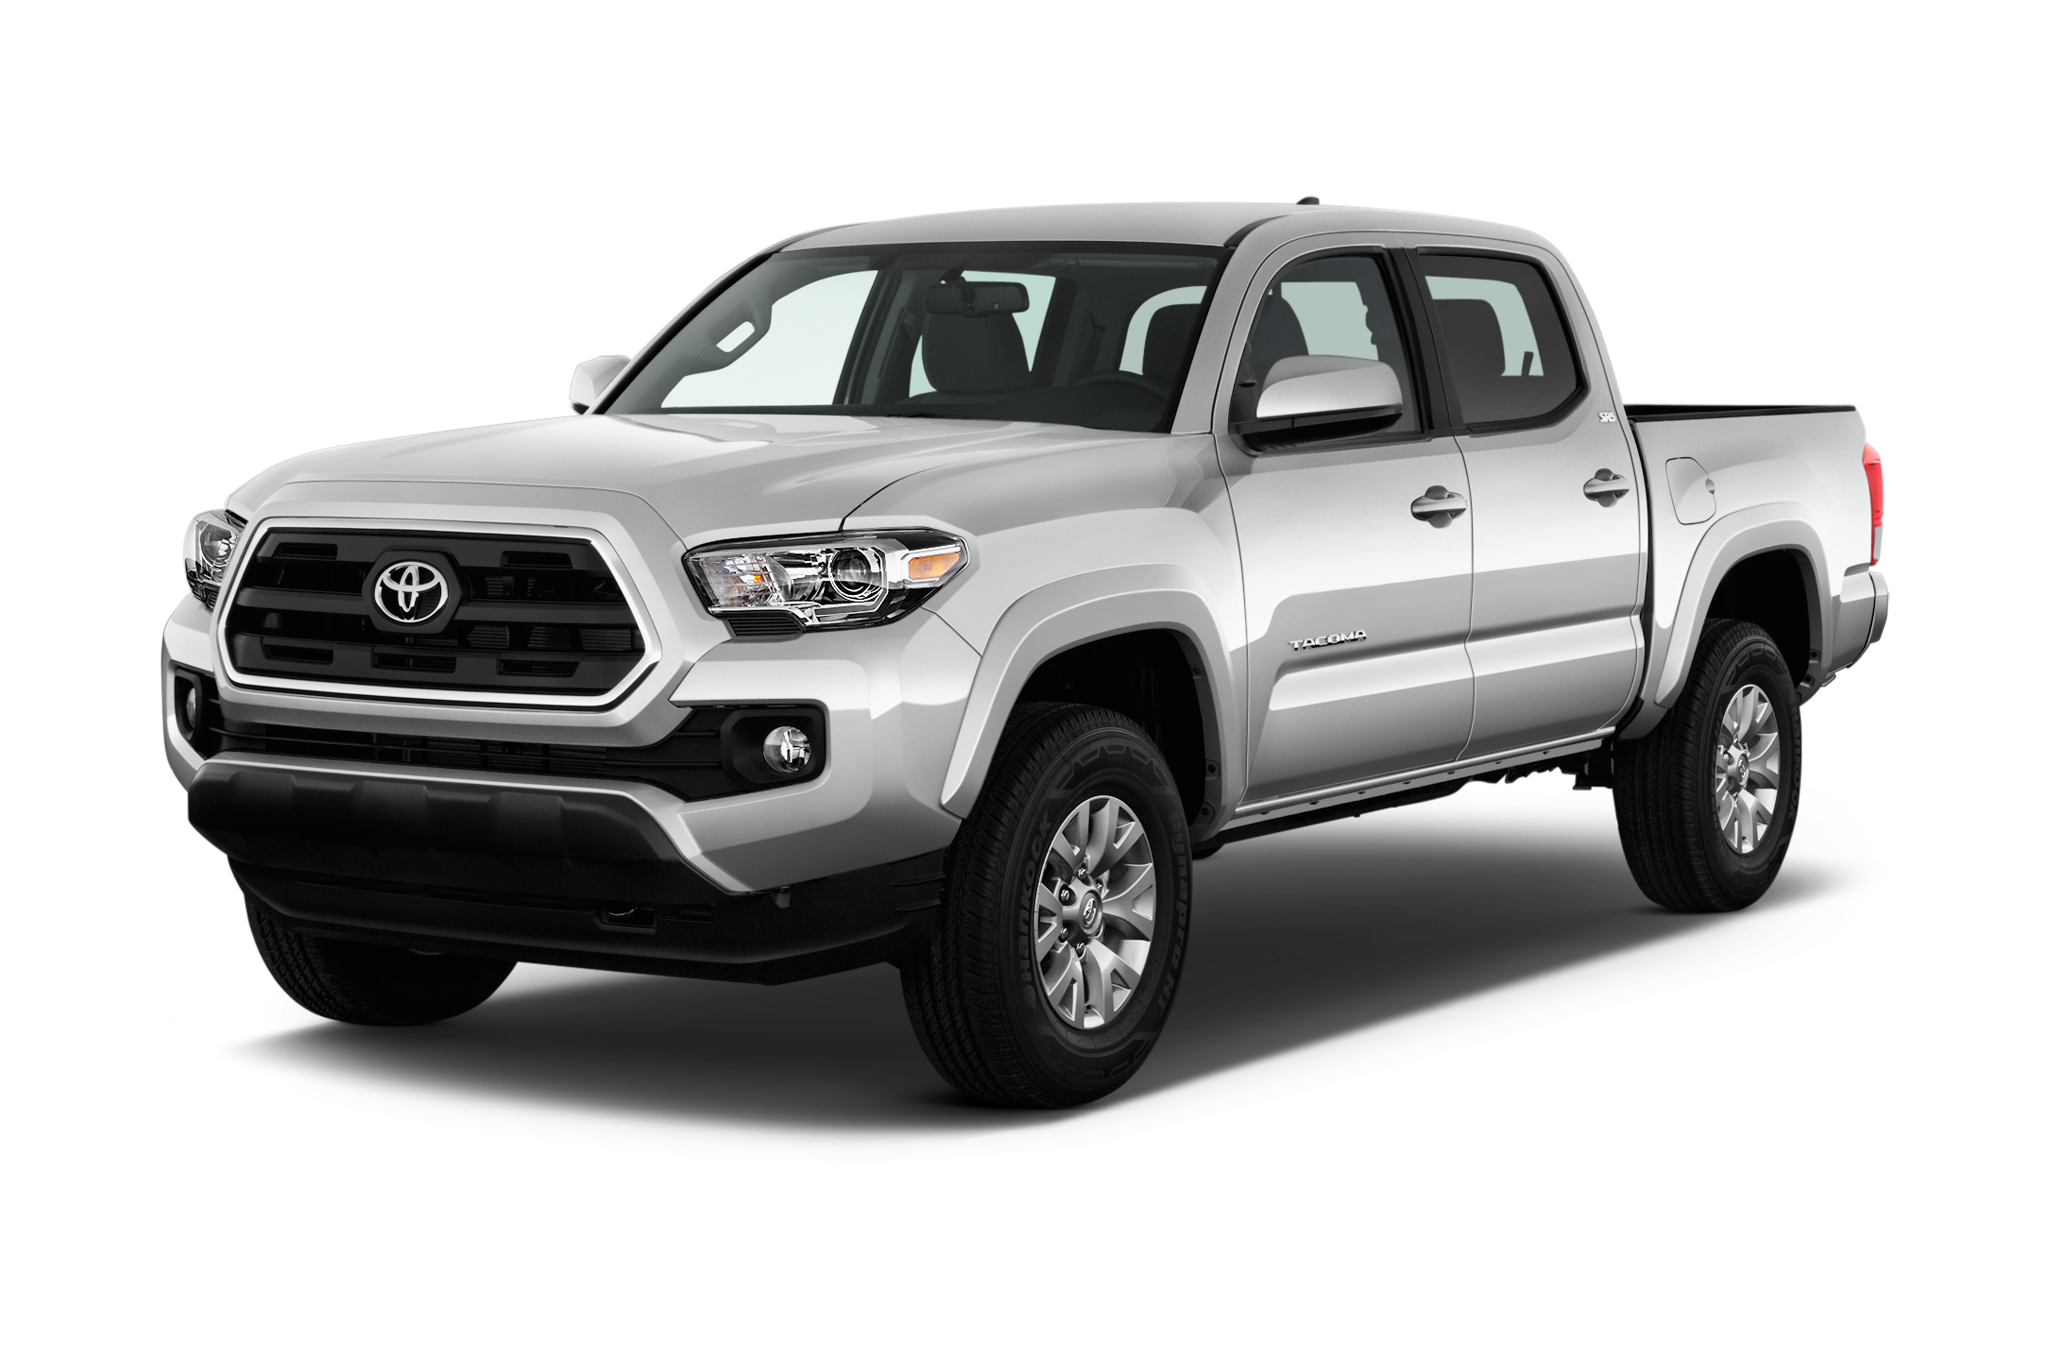 2017 toyota tacoma sr5 double cab 4x2 v6 auto lb interior features msn autos. Black Bedroom Furniture Sets. Home Design Ideas